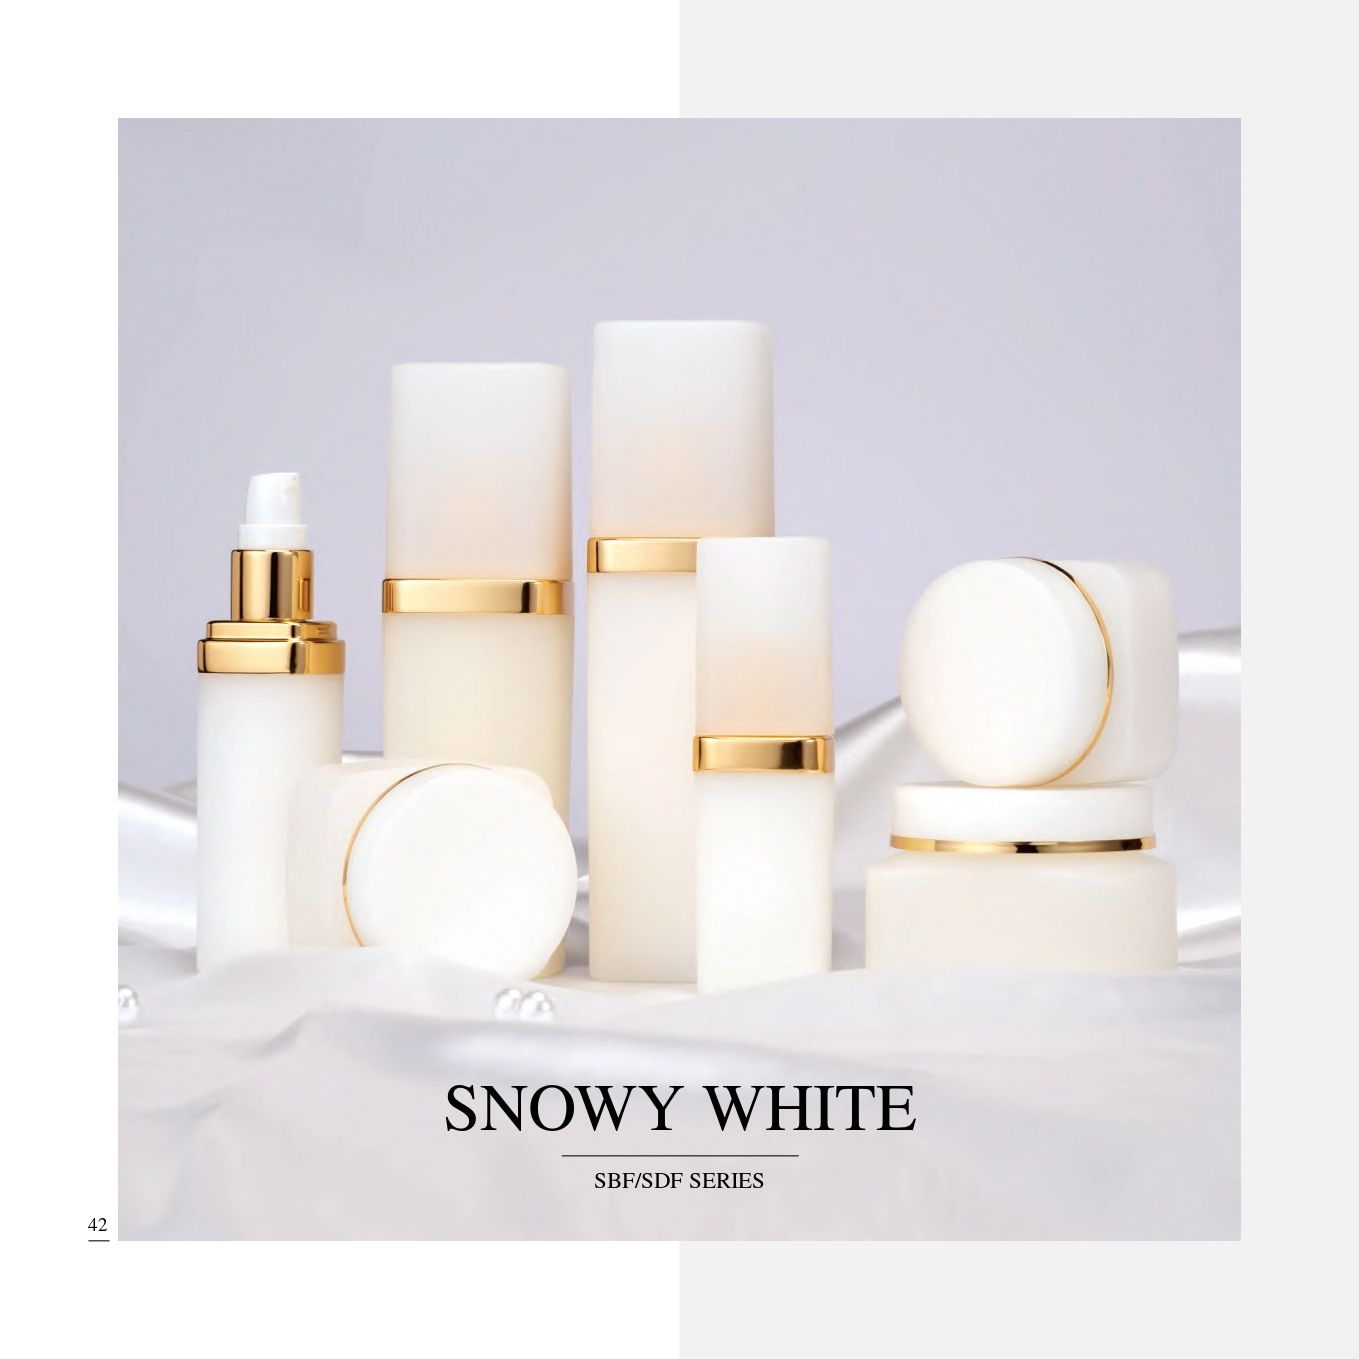 Square shape PP Luxury Cosmetic & Skincare Packaging - Ecofriendly PP Cosmetic Packaging Collection - Snowy White